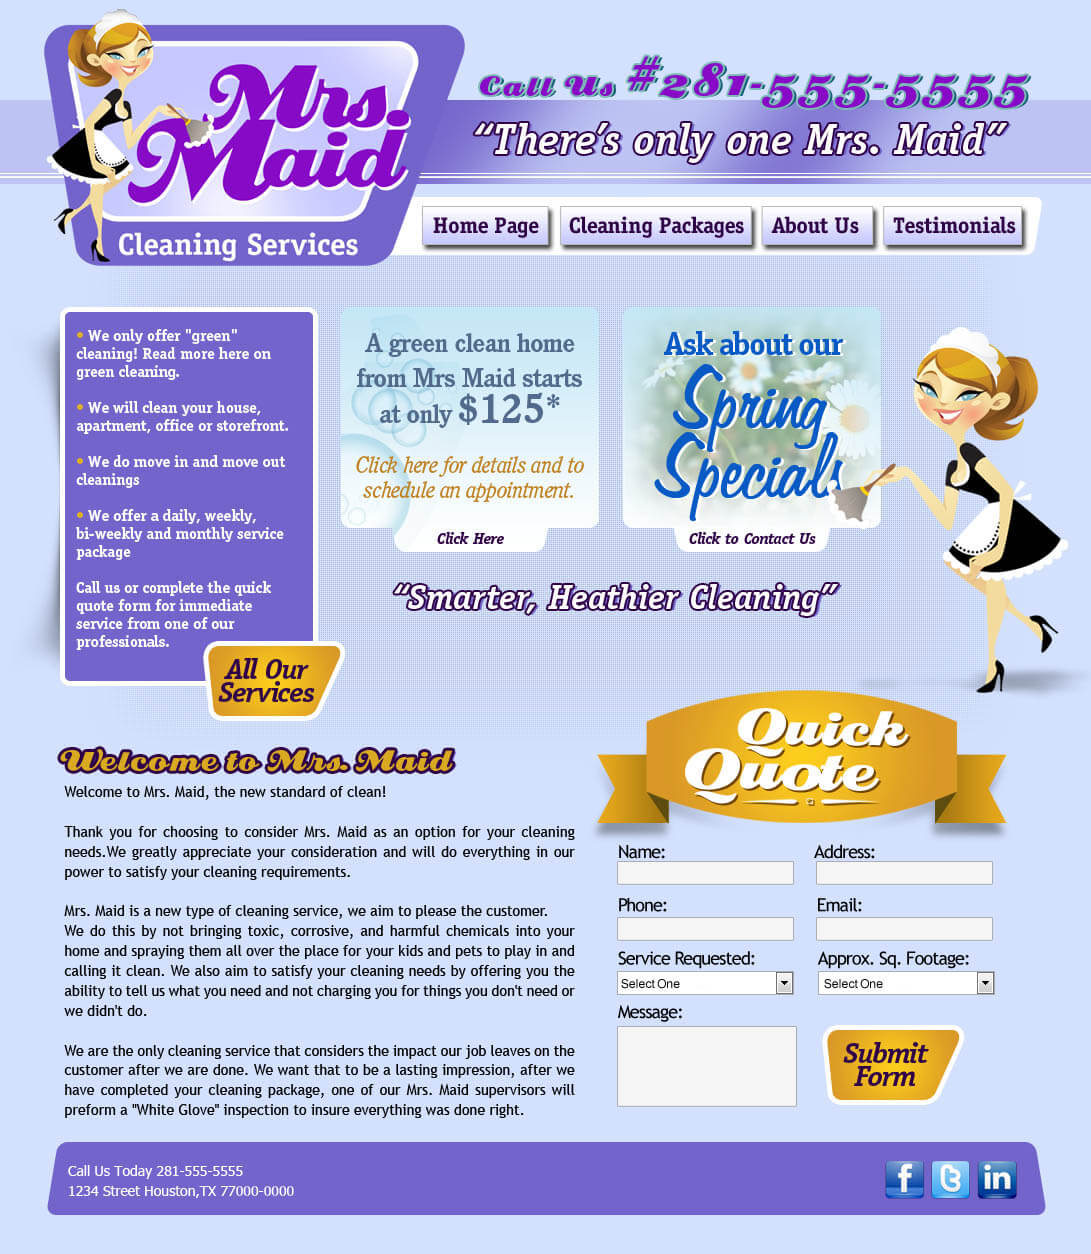 maid service website design